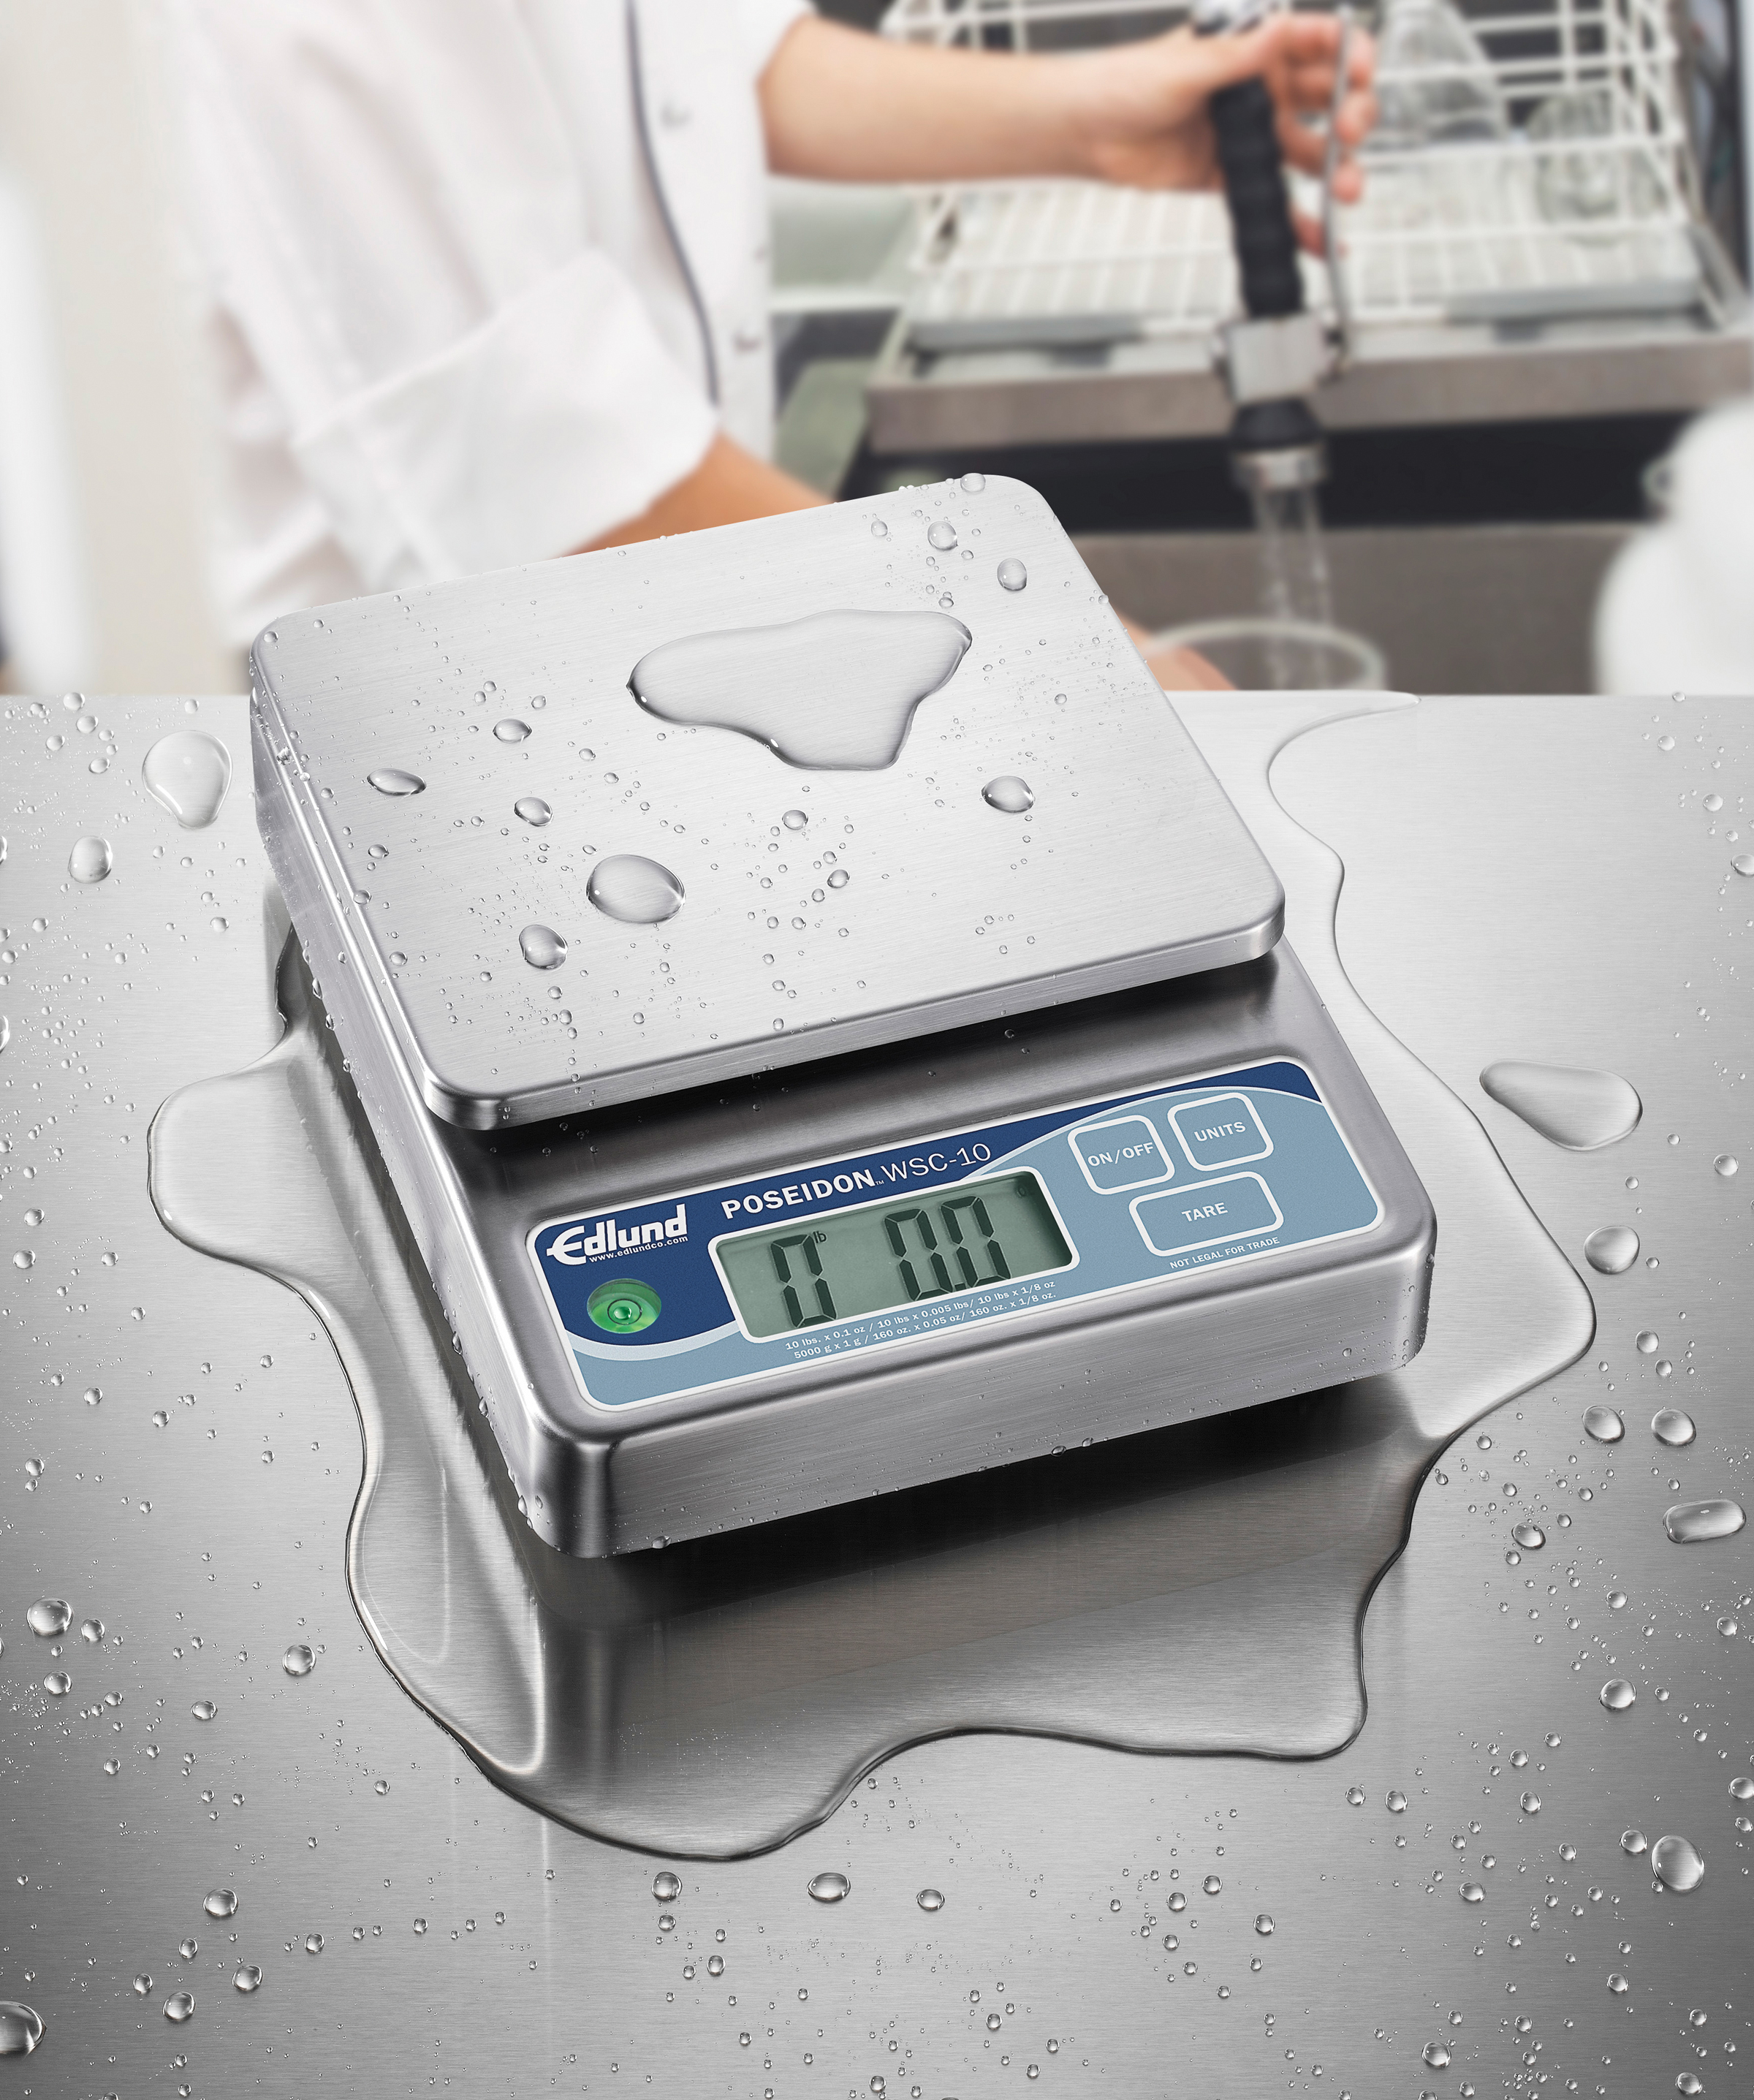 Edlund 50 g Poseidon Submersible Digital Portion Scale W/ Grams Only Function and Oversized Platform